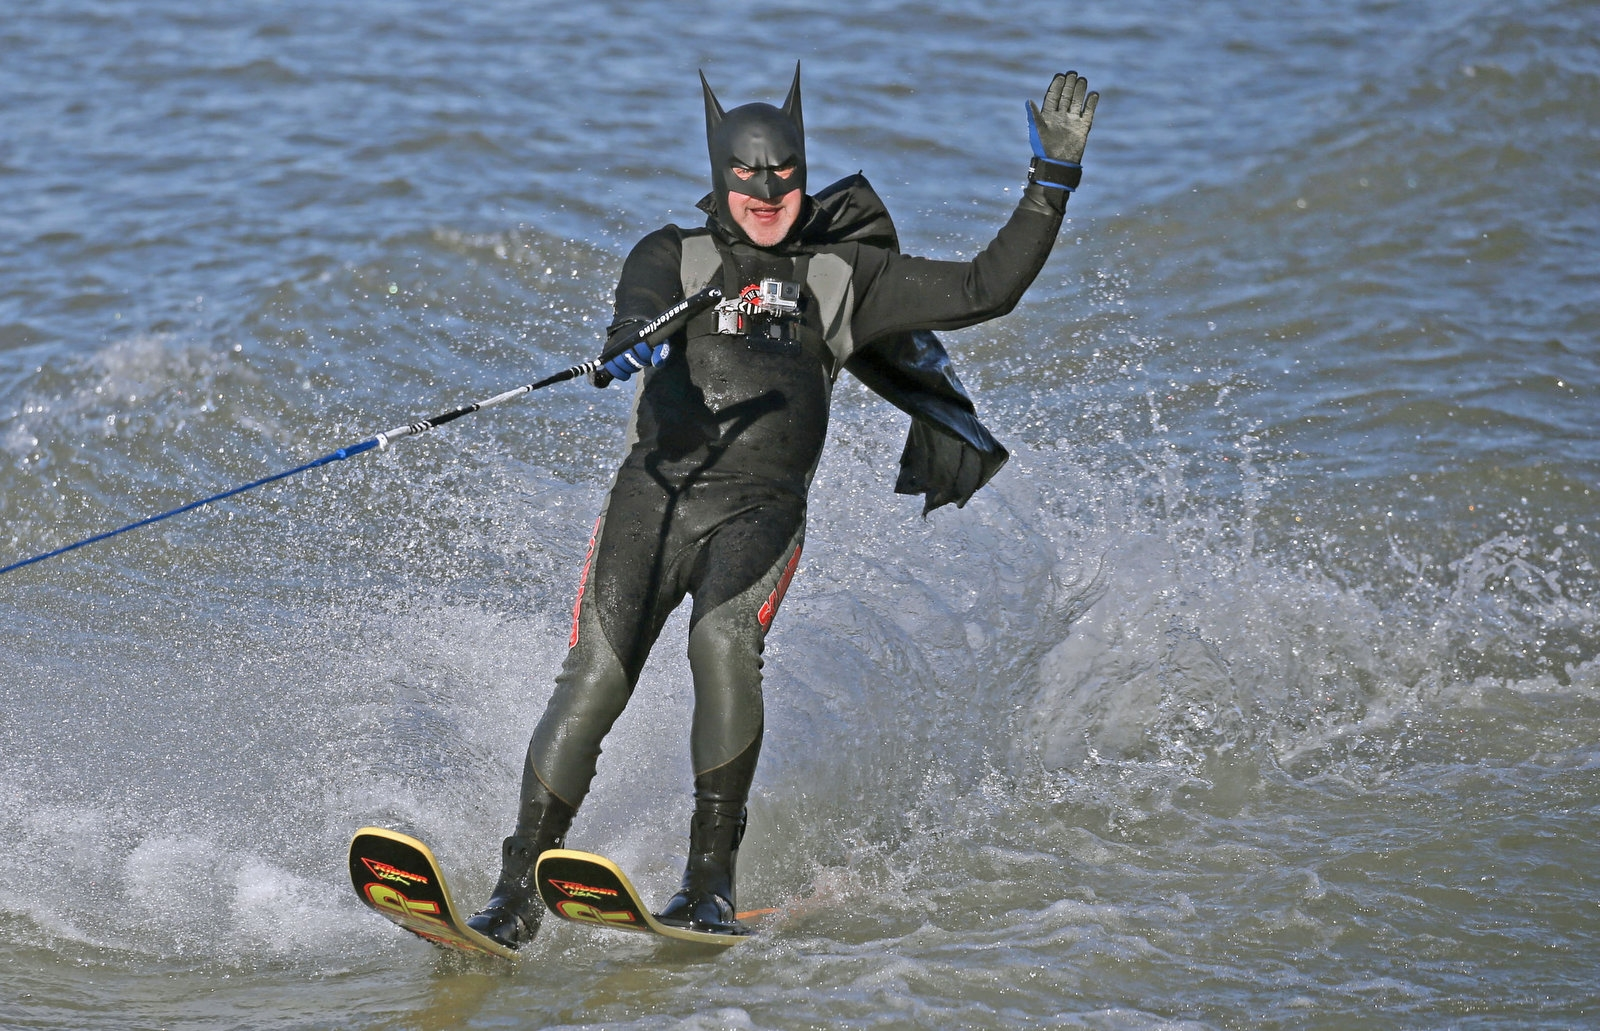 Mark Milanovich of Lewiston, dressed as Batman, navigates the frigid Niagara River on his water skis at the foot of Lewiston Landing as he takes part in the annual Neptune Water Ski Club charity competition. This was on Sunday, Jan. 1, 2017.